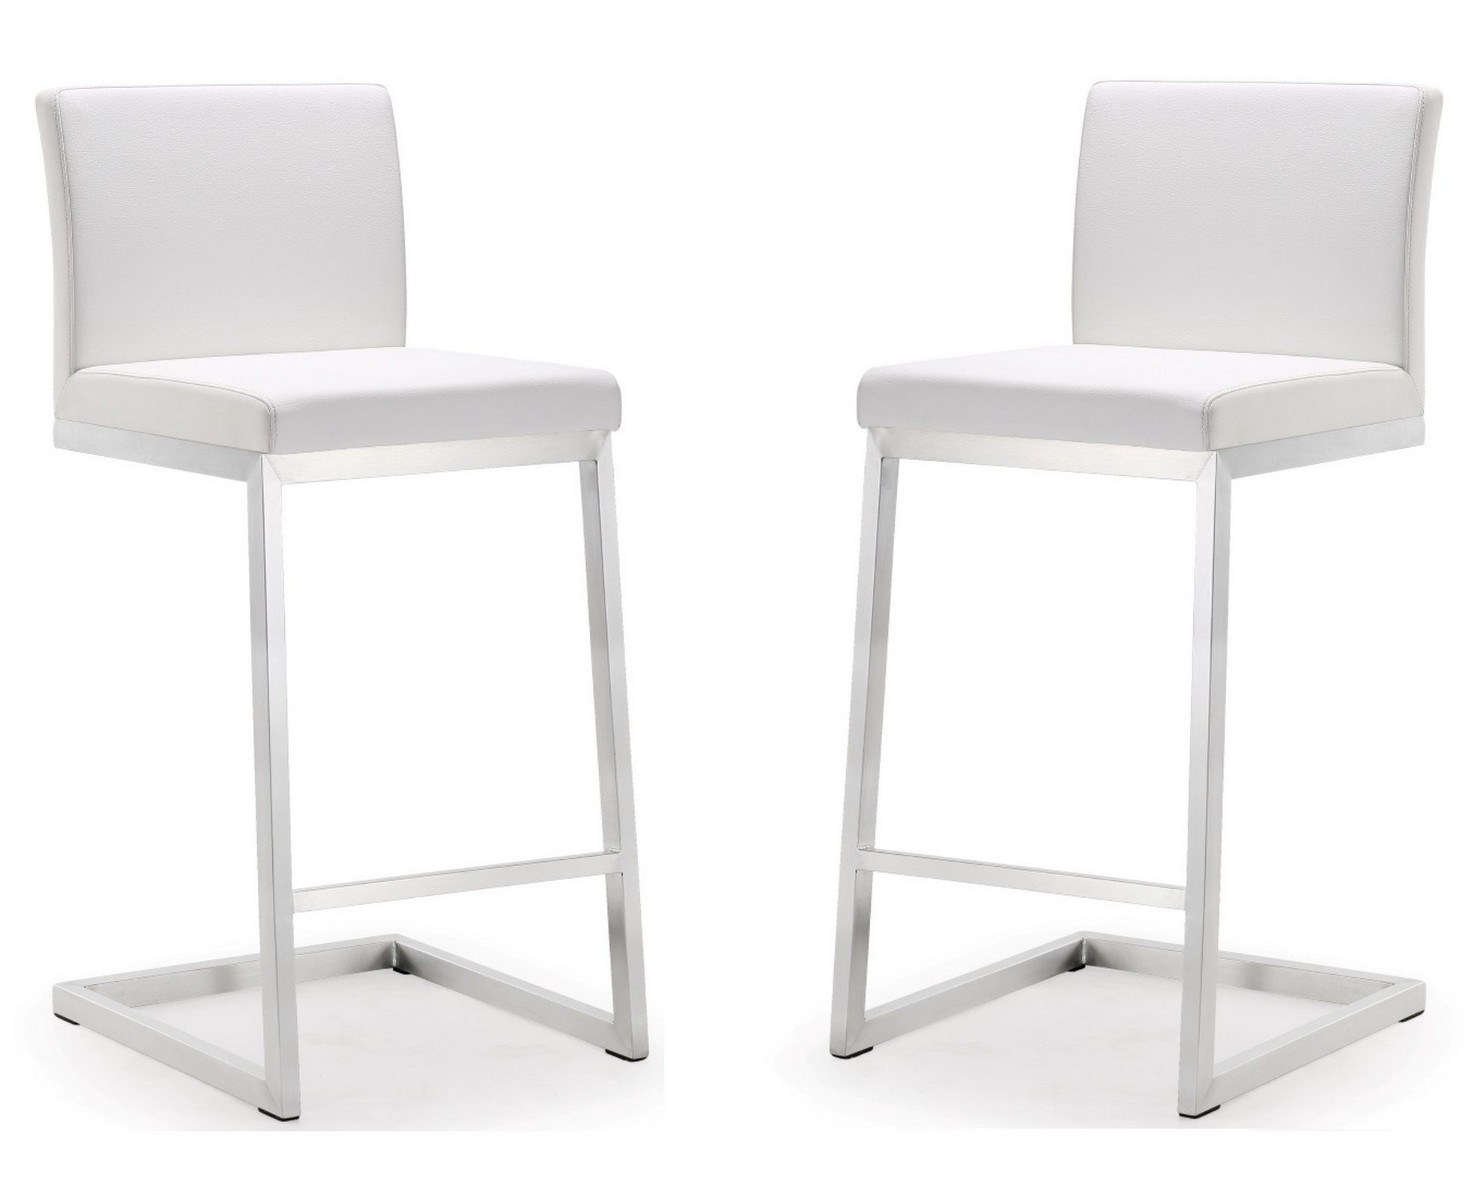 TOV Furniture Parma White Stainless Steel Counter Stool   Set Of 2